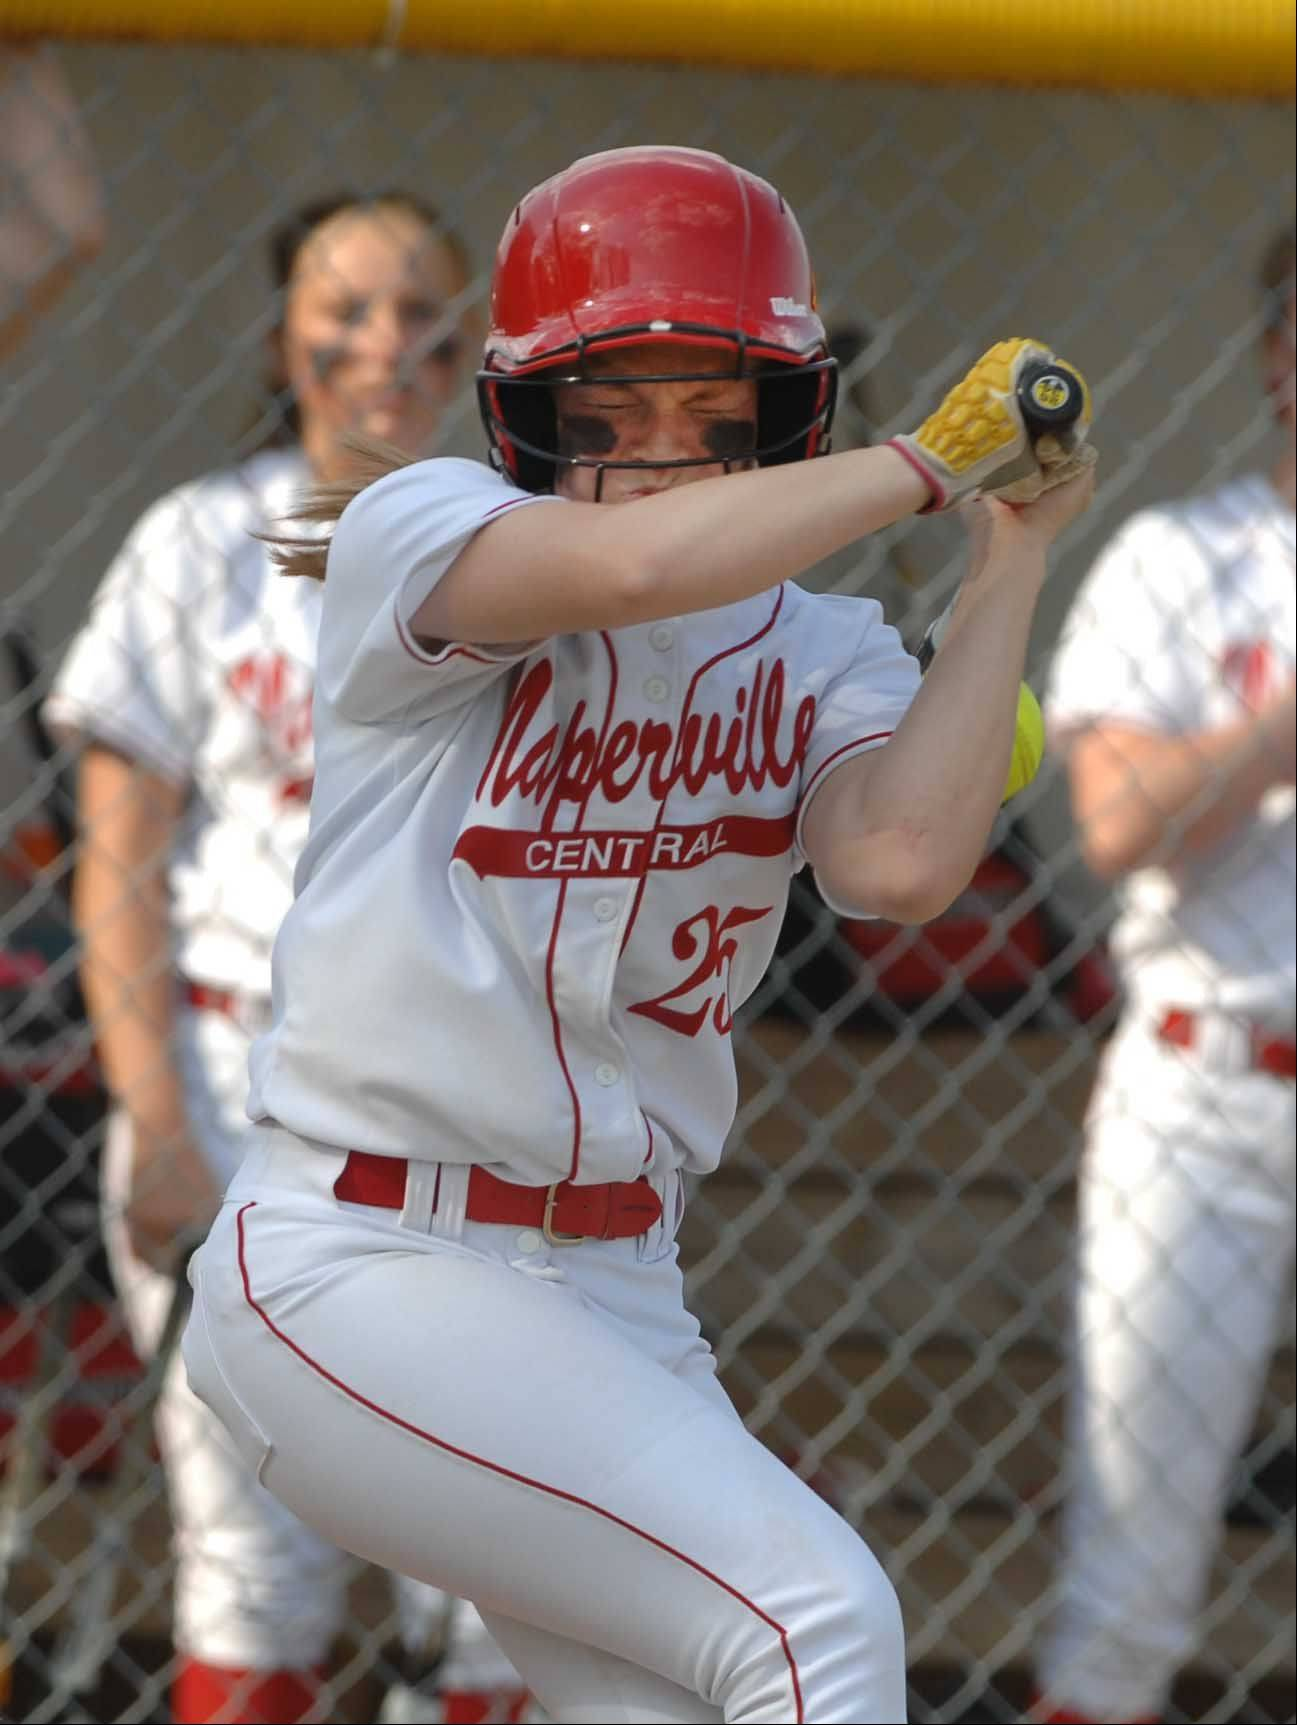 Naperville Central's Maddi Doane took part in Wednesday's game against Glenbard North in Naperville. She was hit by a wild pitch in the first.